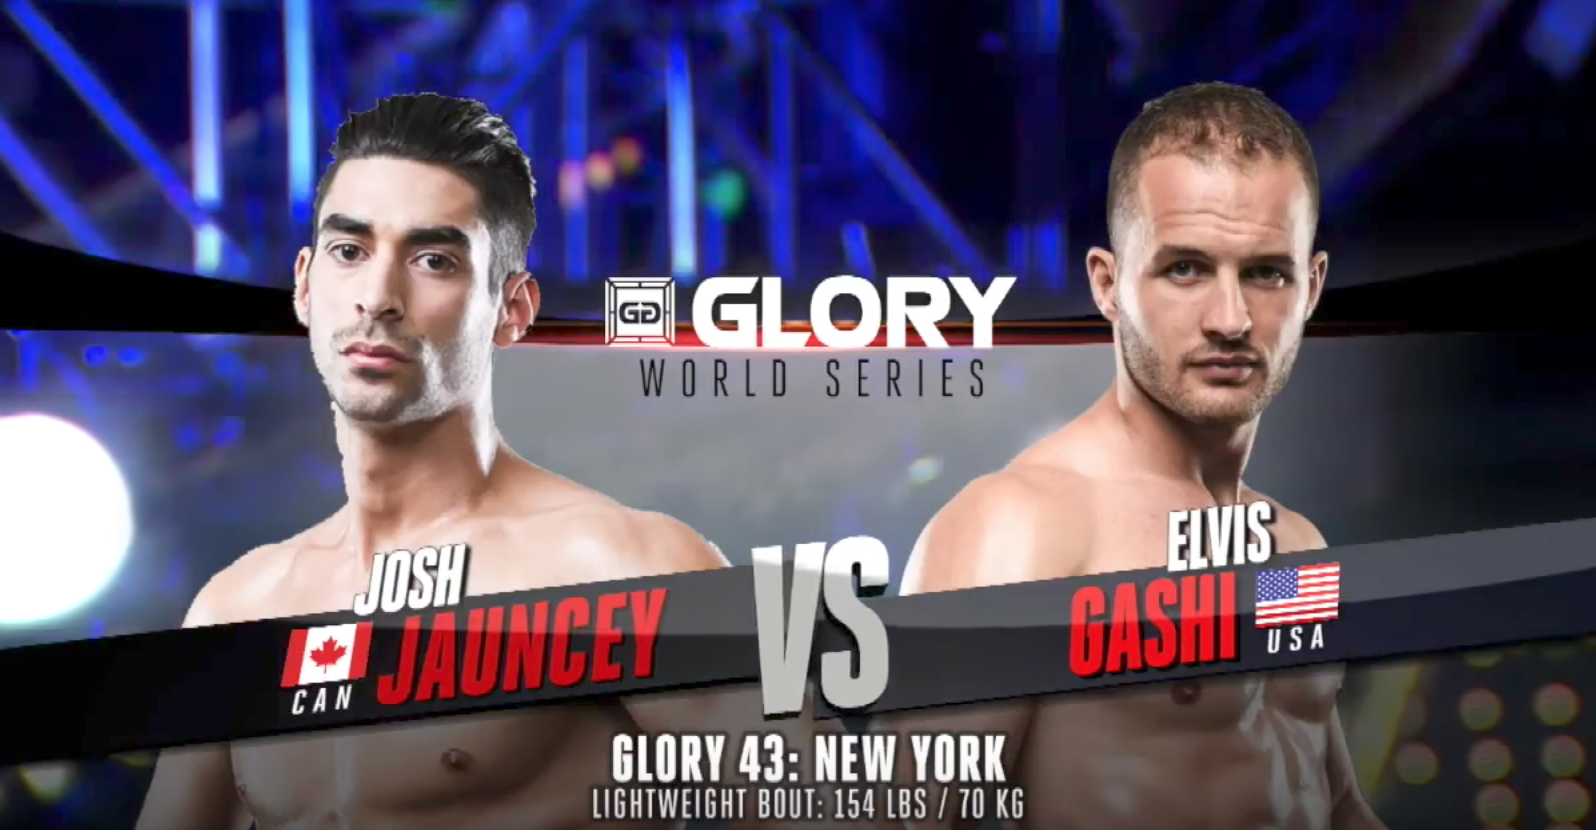 FULL MATCH - Josh Jauncey vs. Elvis Gashi: GLORY 43 New York